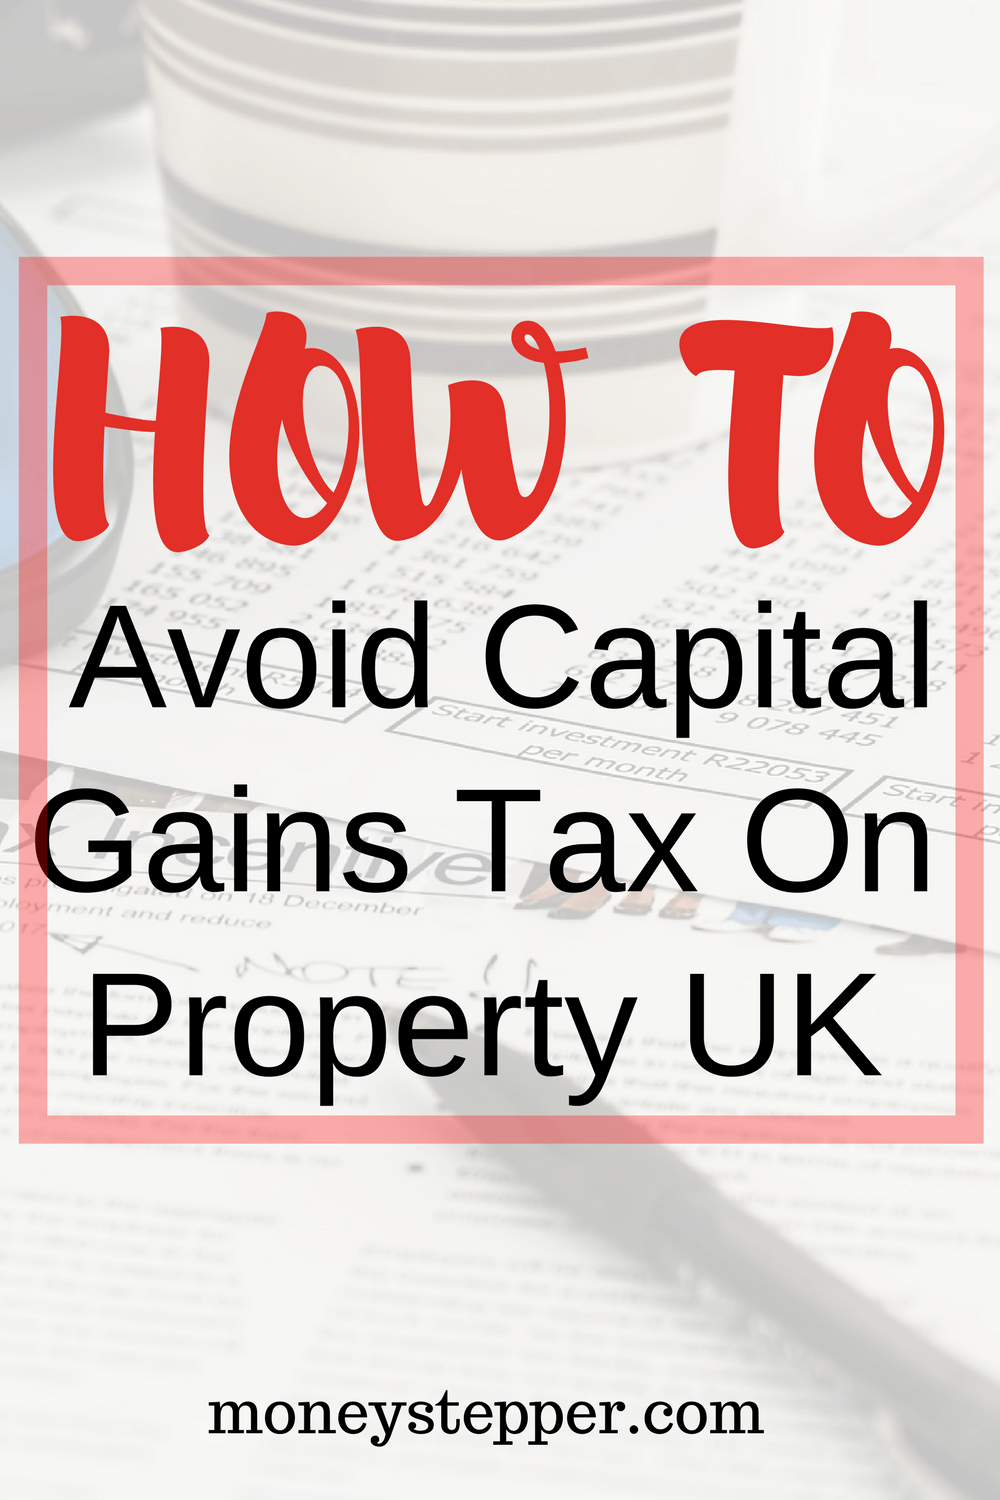 How To Avoid Capital Gains Tax On Property UK